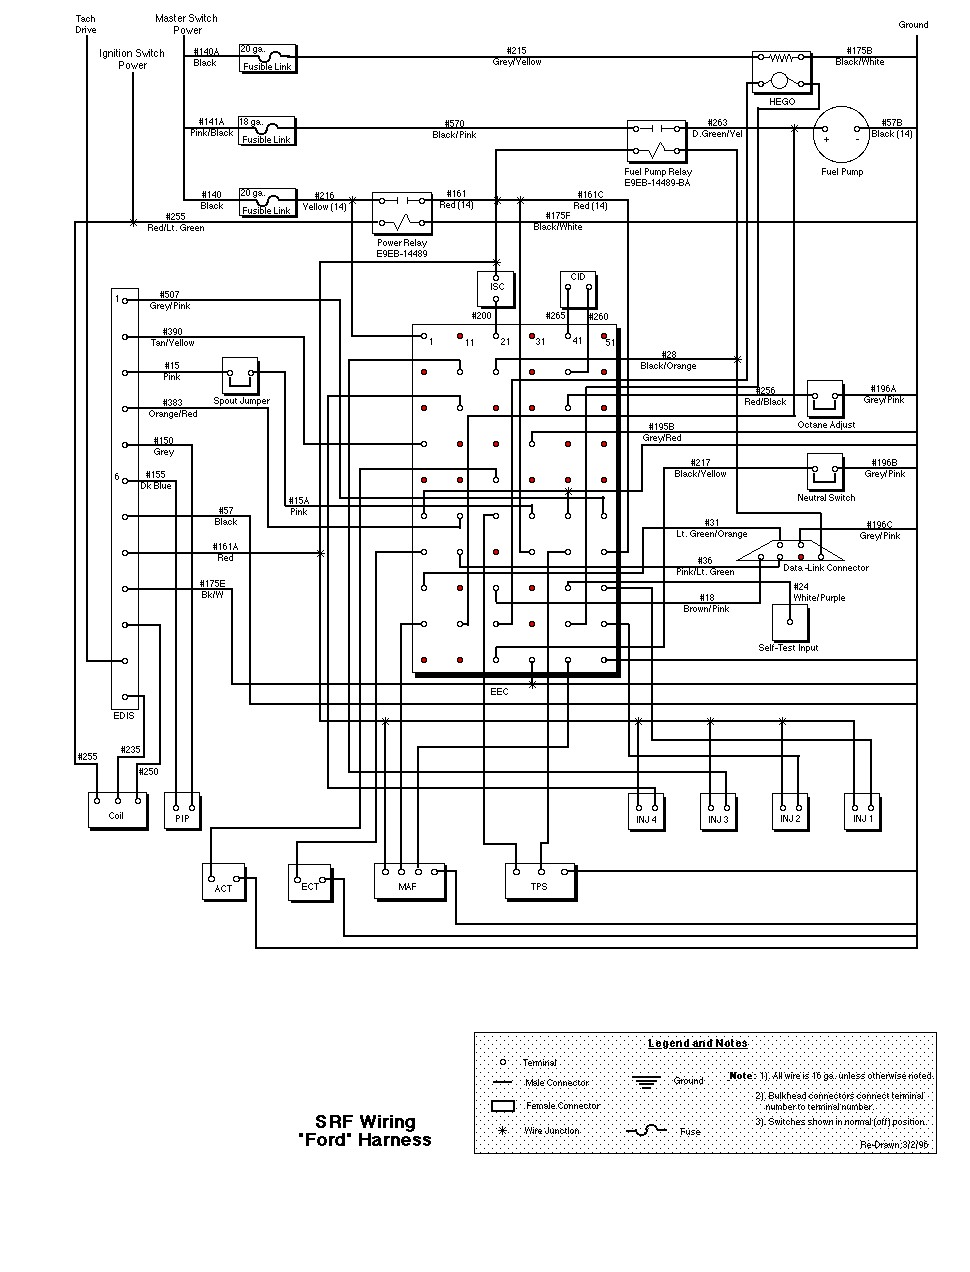 Ford 8000 Tractor Wiring Diagram Opinions About 5000 Fuse Box 1993 L8000 Rh Aiandco Co Diesel Old